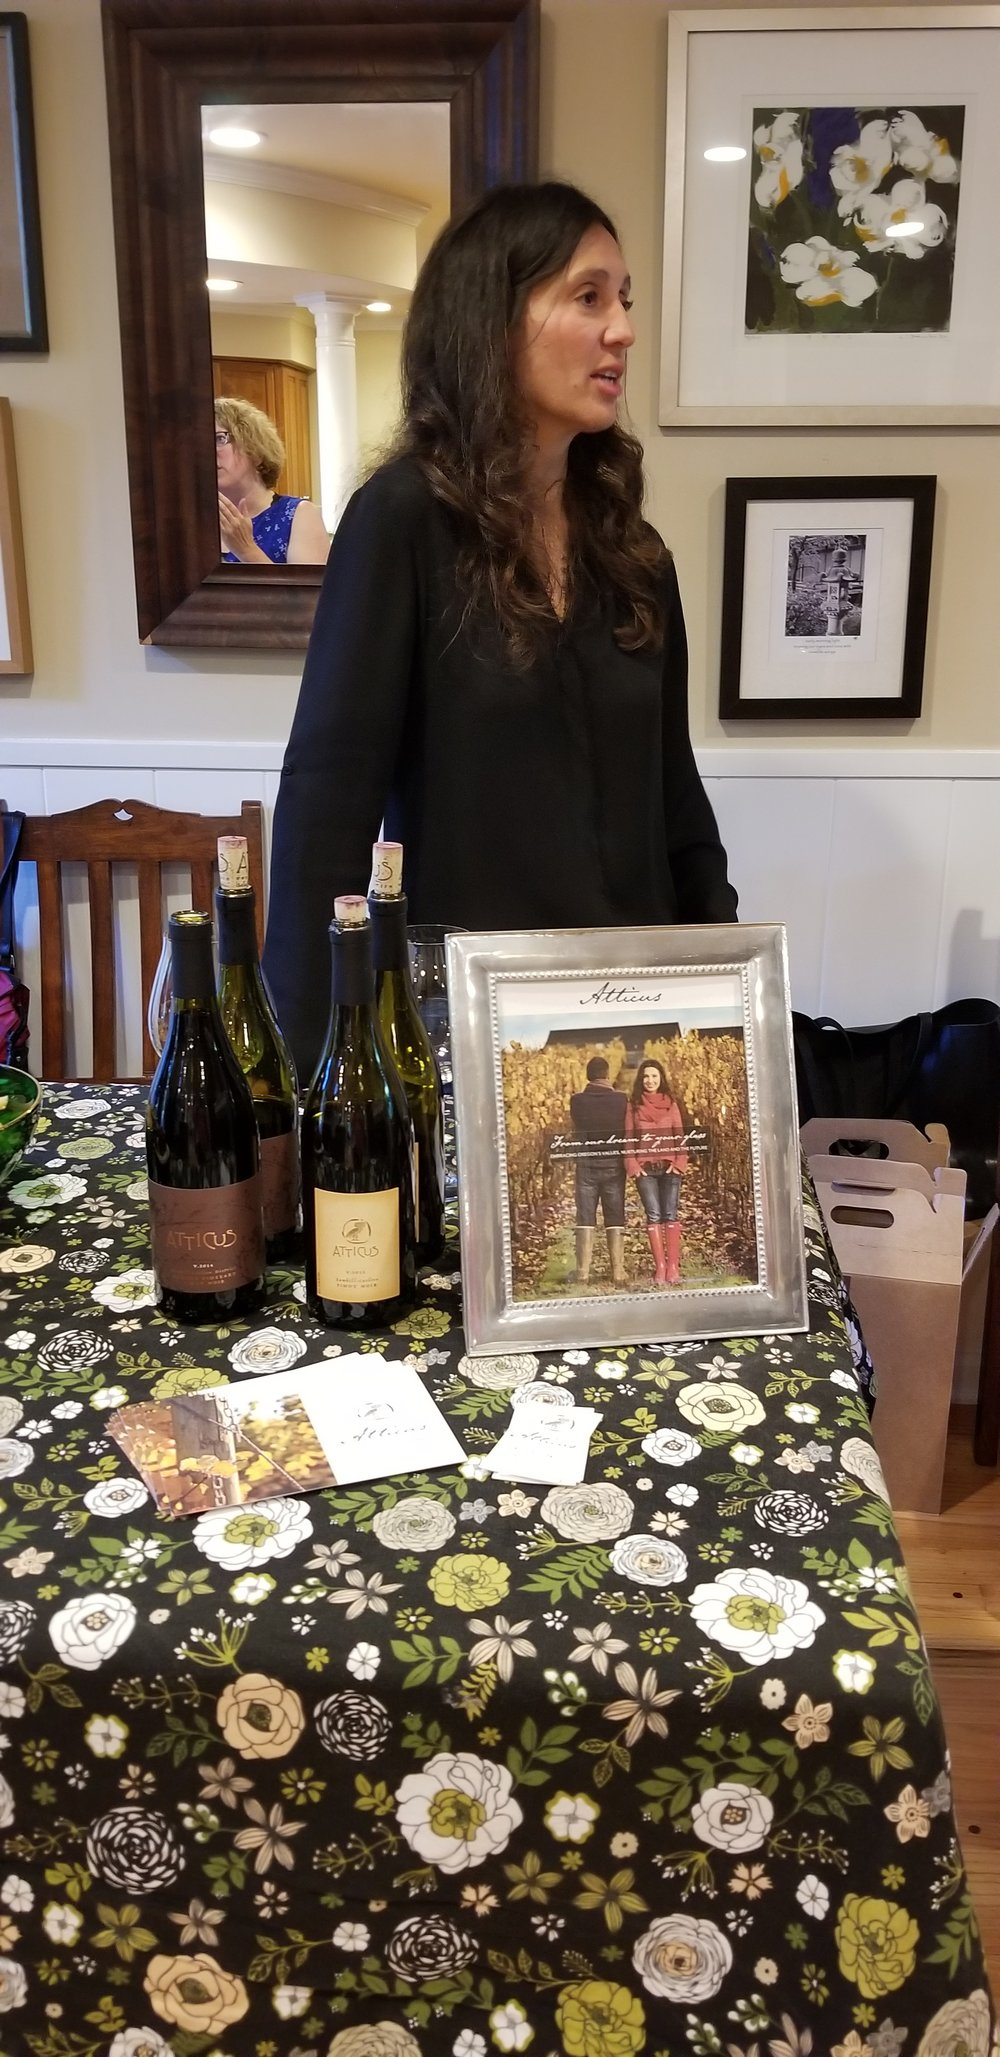 Ximena from Atticus sharing her wares